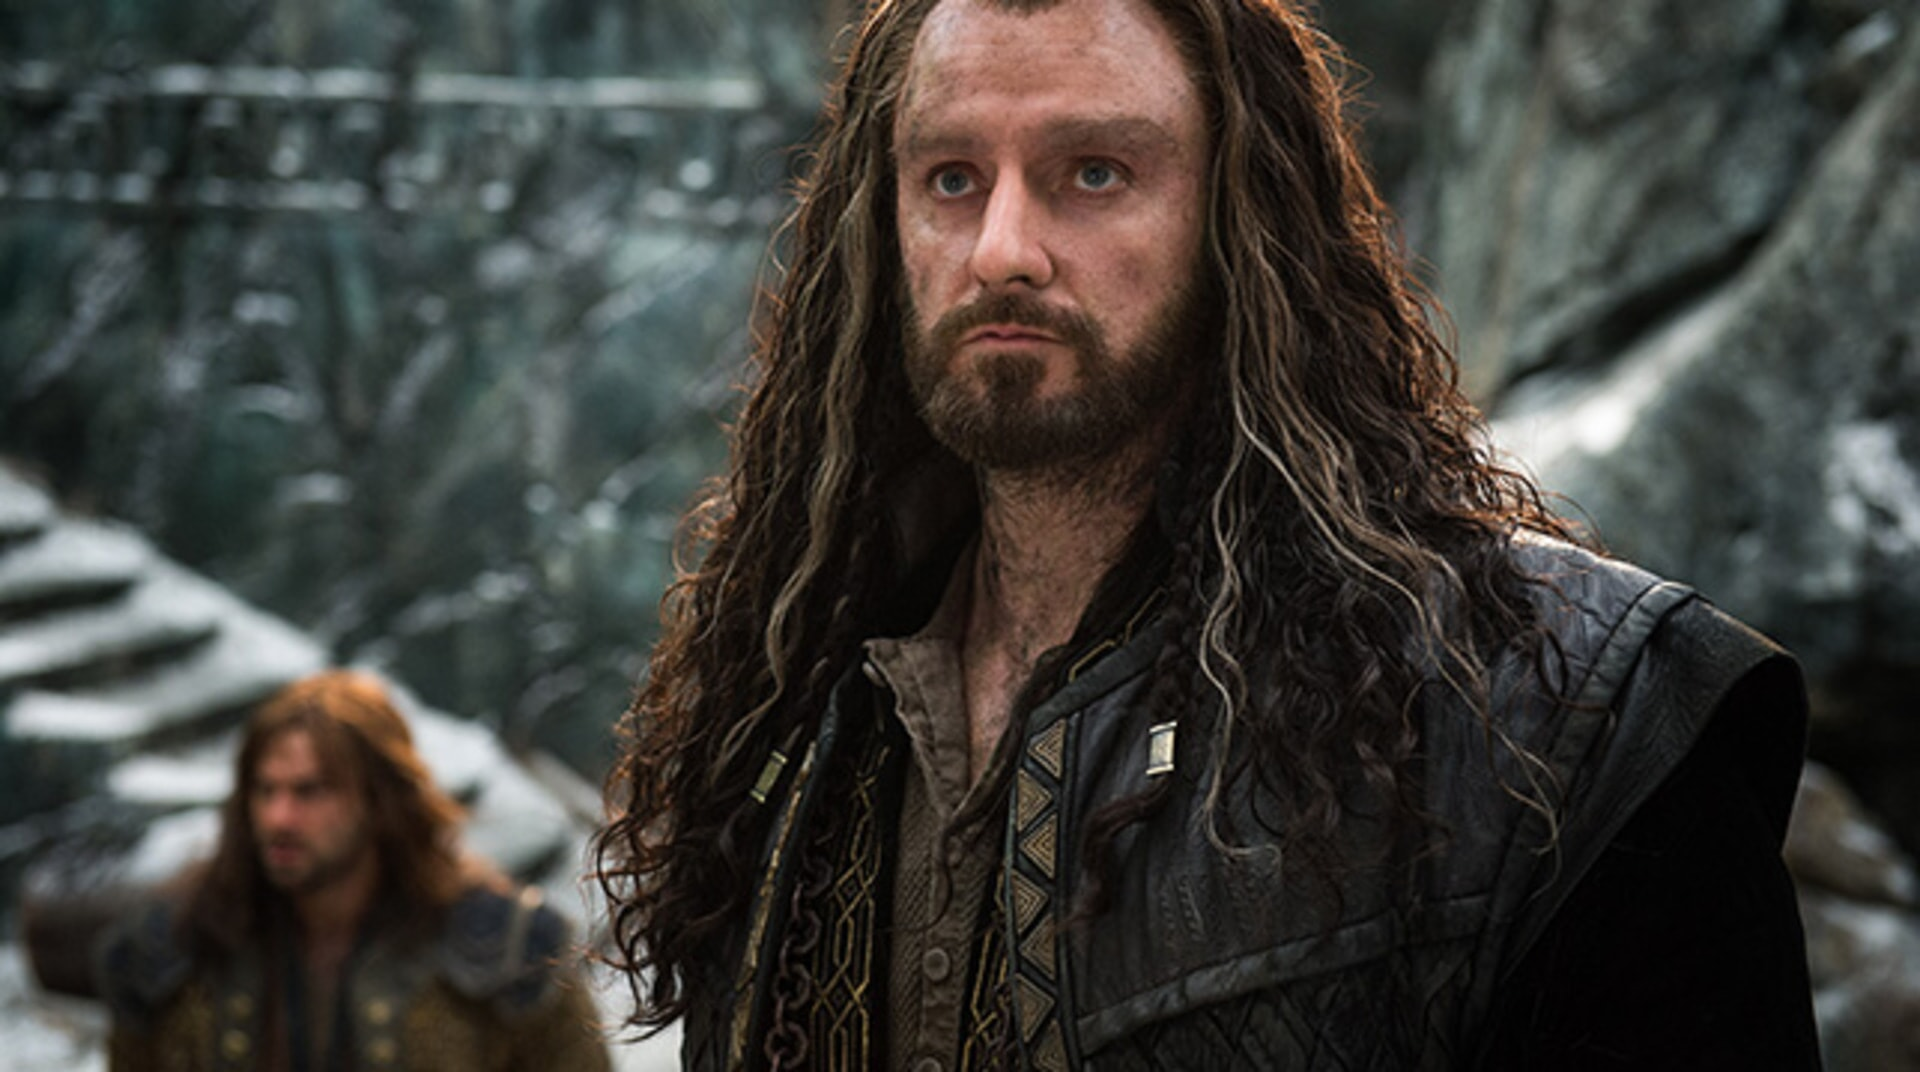 The Hobbit: The Battle of the Five Armies - Image 17